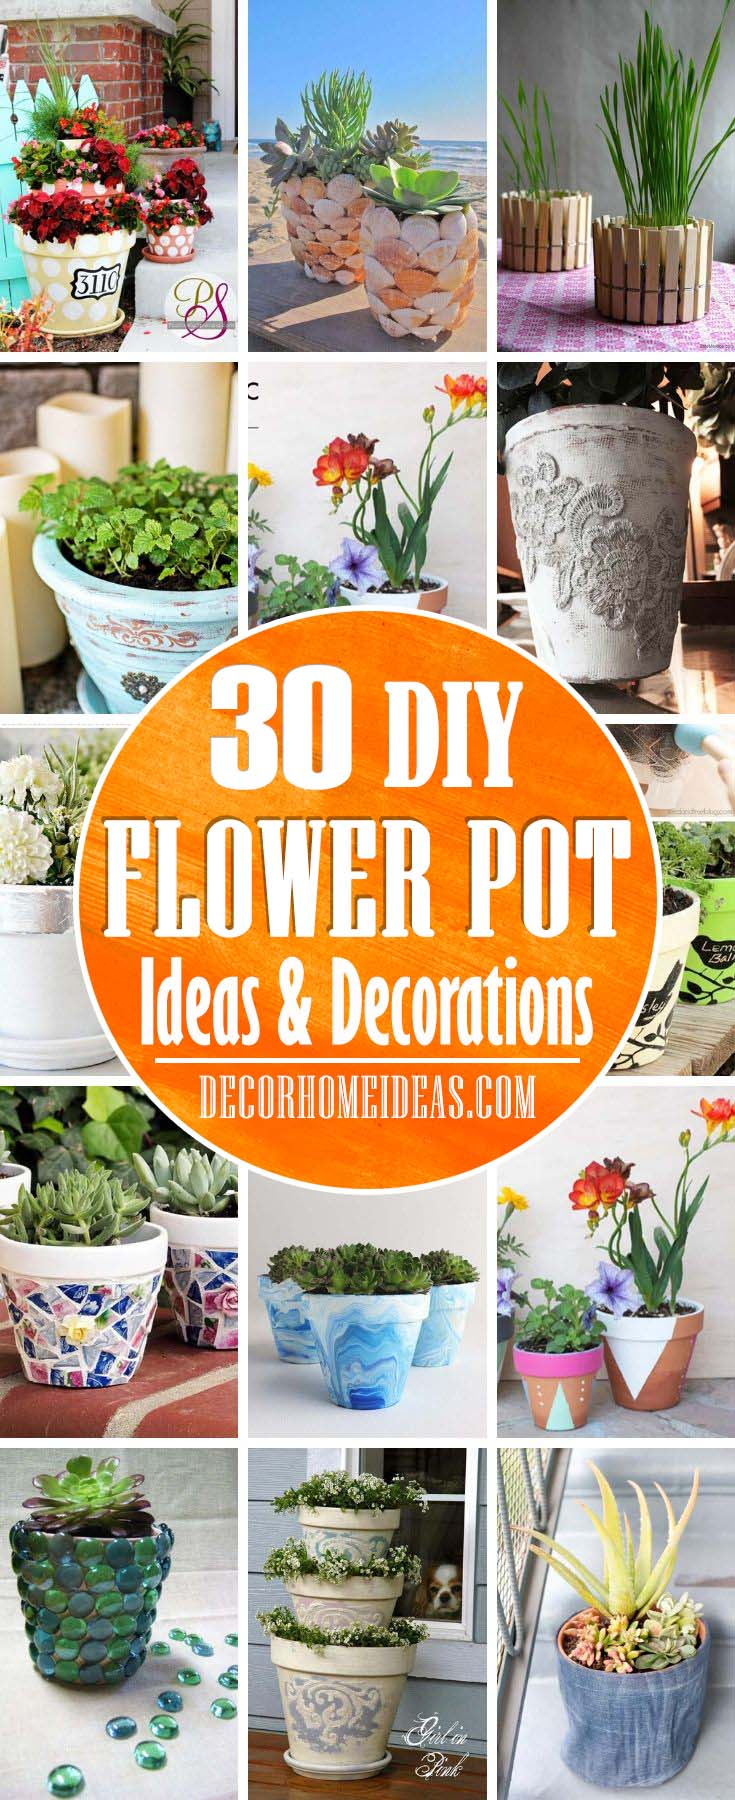 Beautiful DIY Flower Pot Ideas. Spruce up your garden with these easy DIY flower pot ideas. The best part is they are not expensive and can make a significant change in your garden. #diy #flowerpot #garden #flower #decorhomeideas